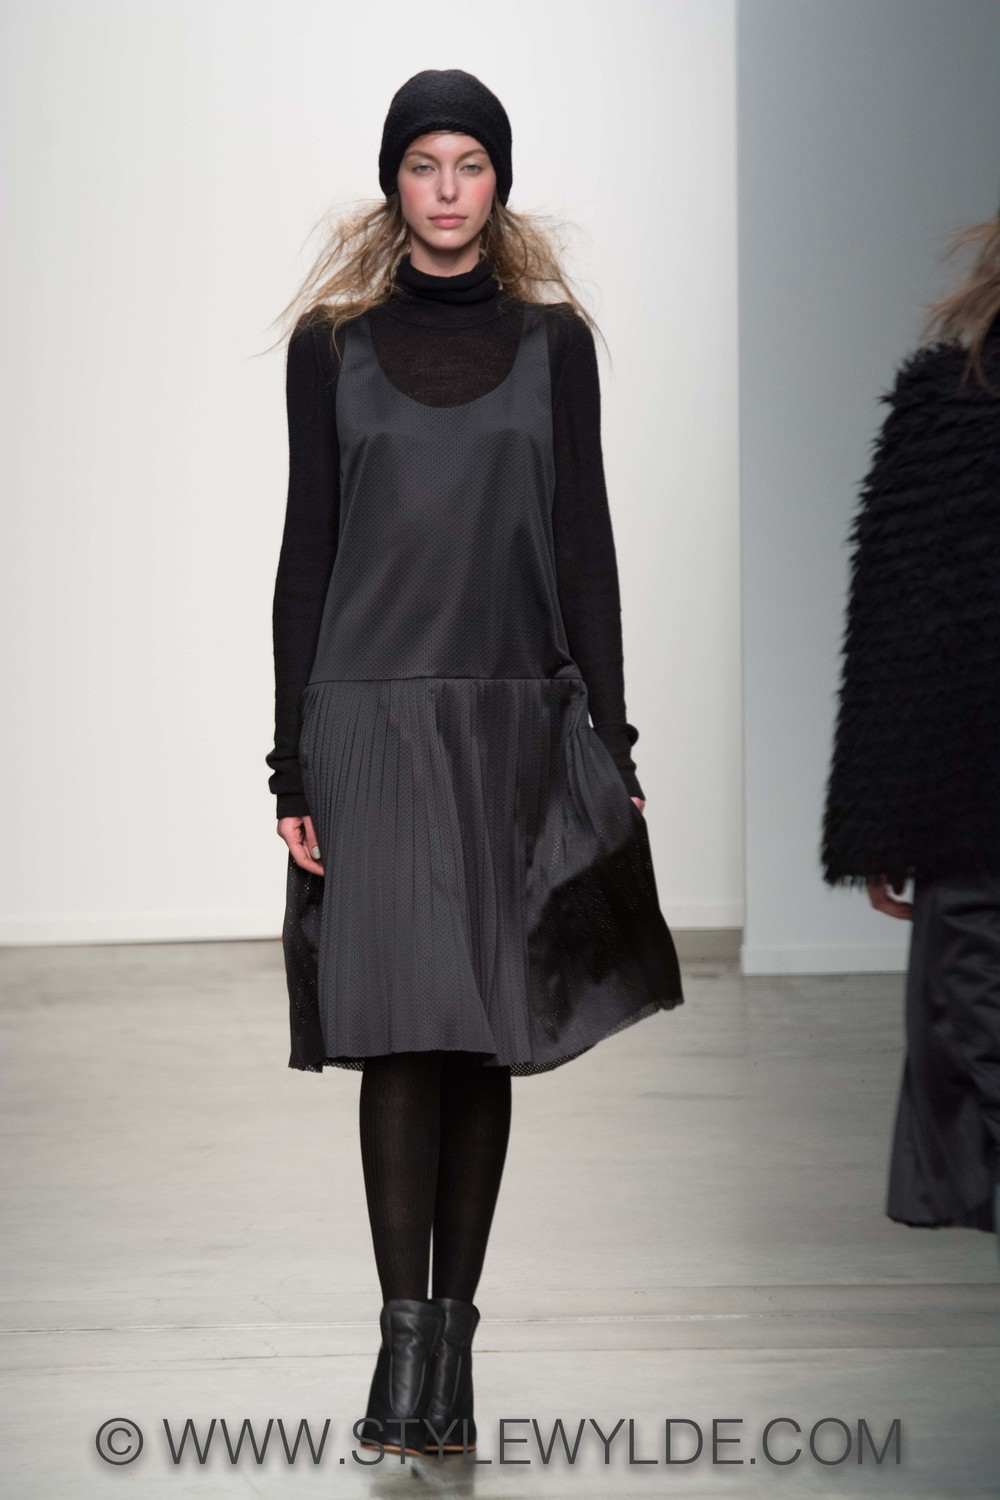 Stylewylde_adetacher_AW14_Gallery (9 of 24).jpg